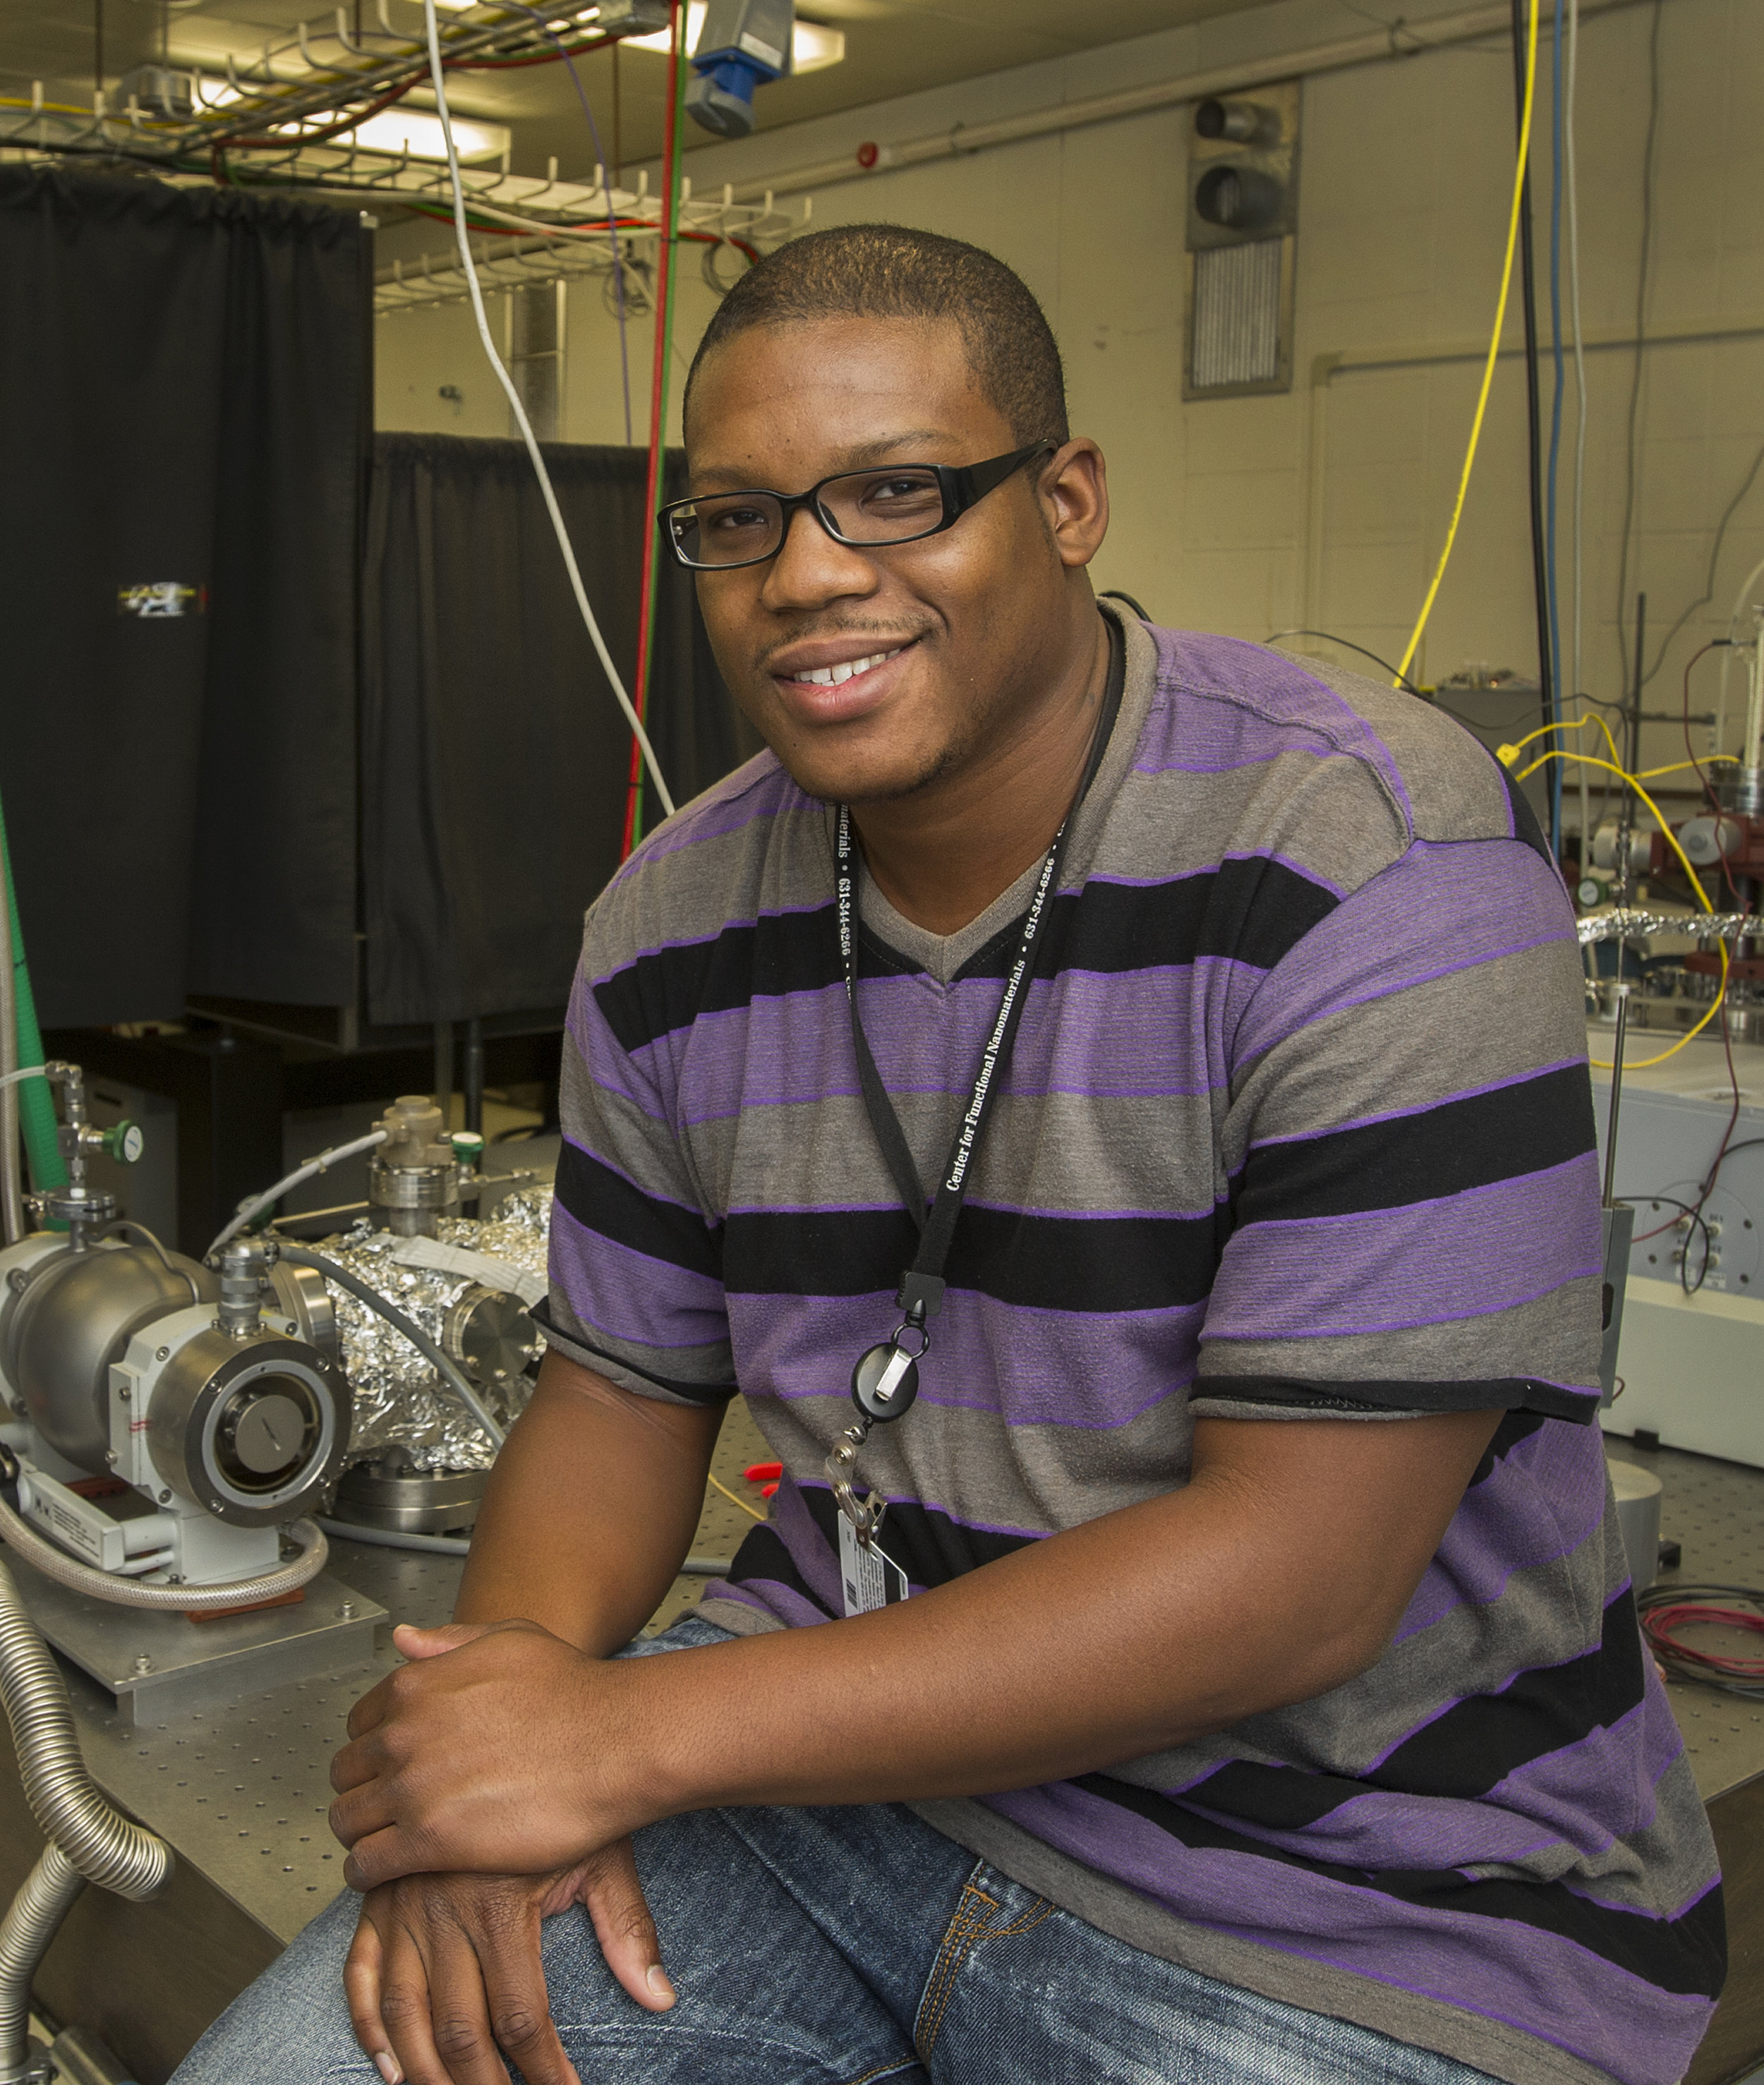 Robert M. Palomino - Current Position: Postdoctoral Research Fellow at Brookhaven National Laboratory at Jose Rodriguez's group.